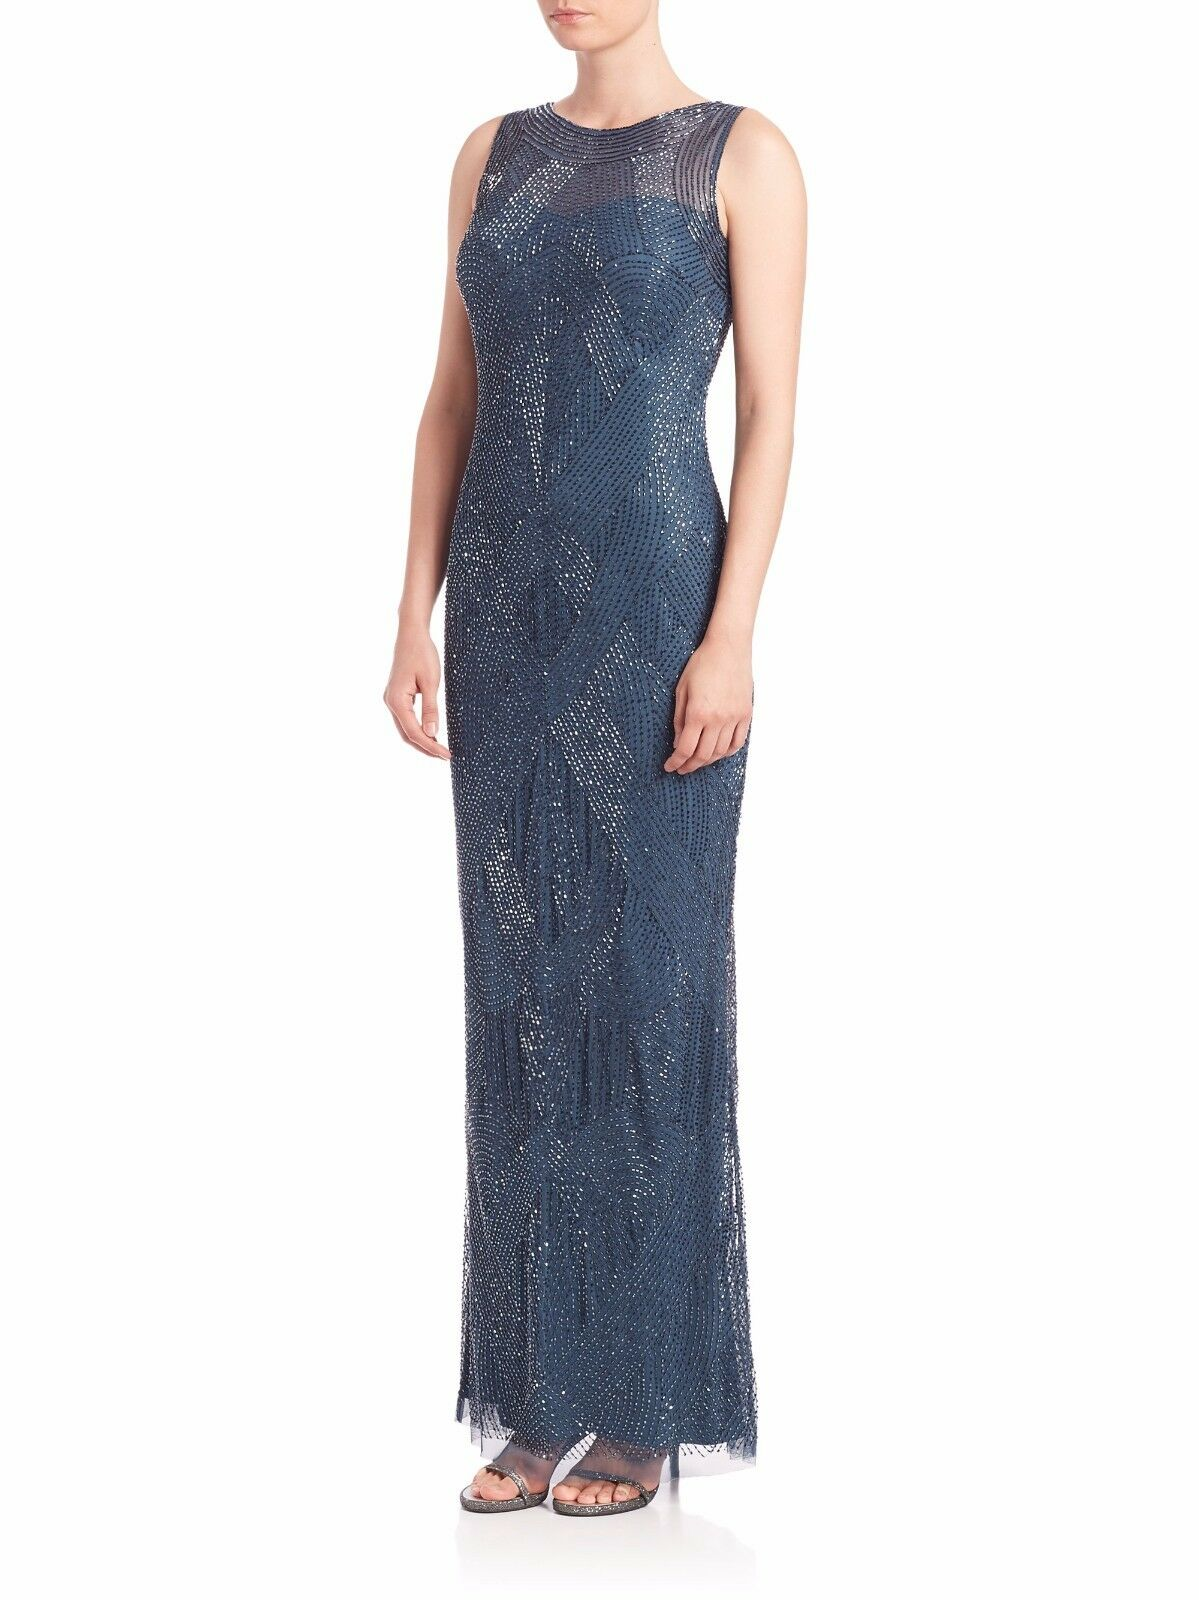 NWT  Aidan Mattox 'Riviera' Beaded Illusion-Top Gown Dress bluee [SZ 2]  M157